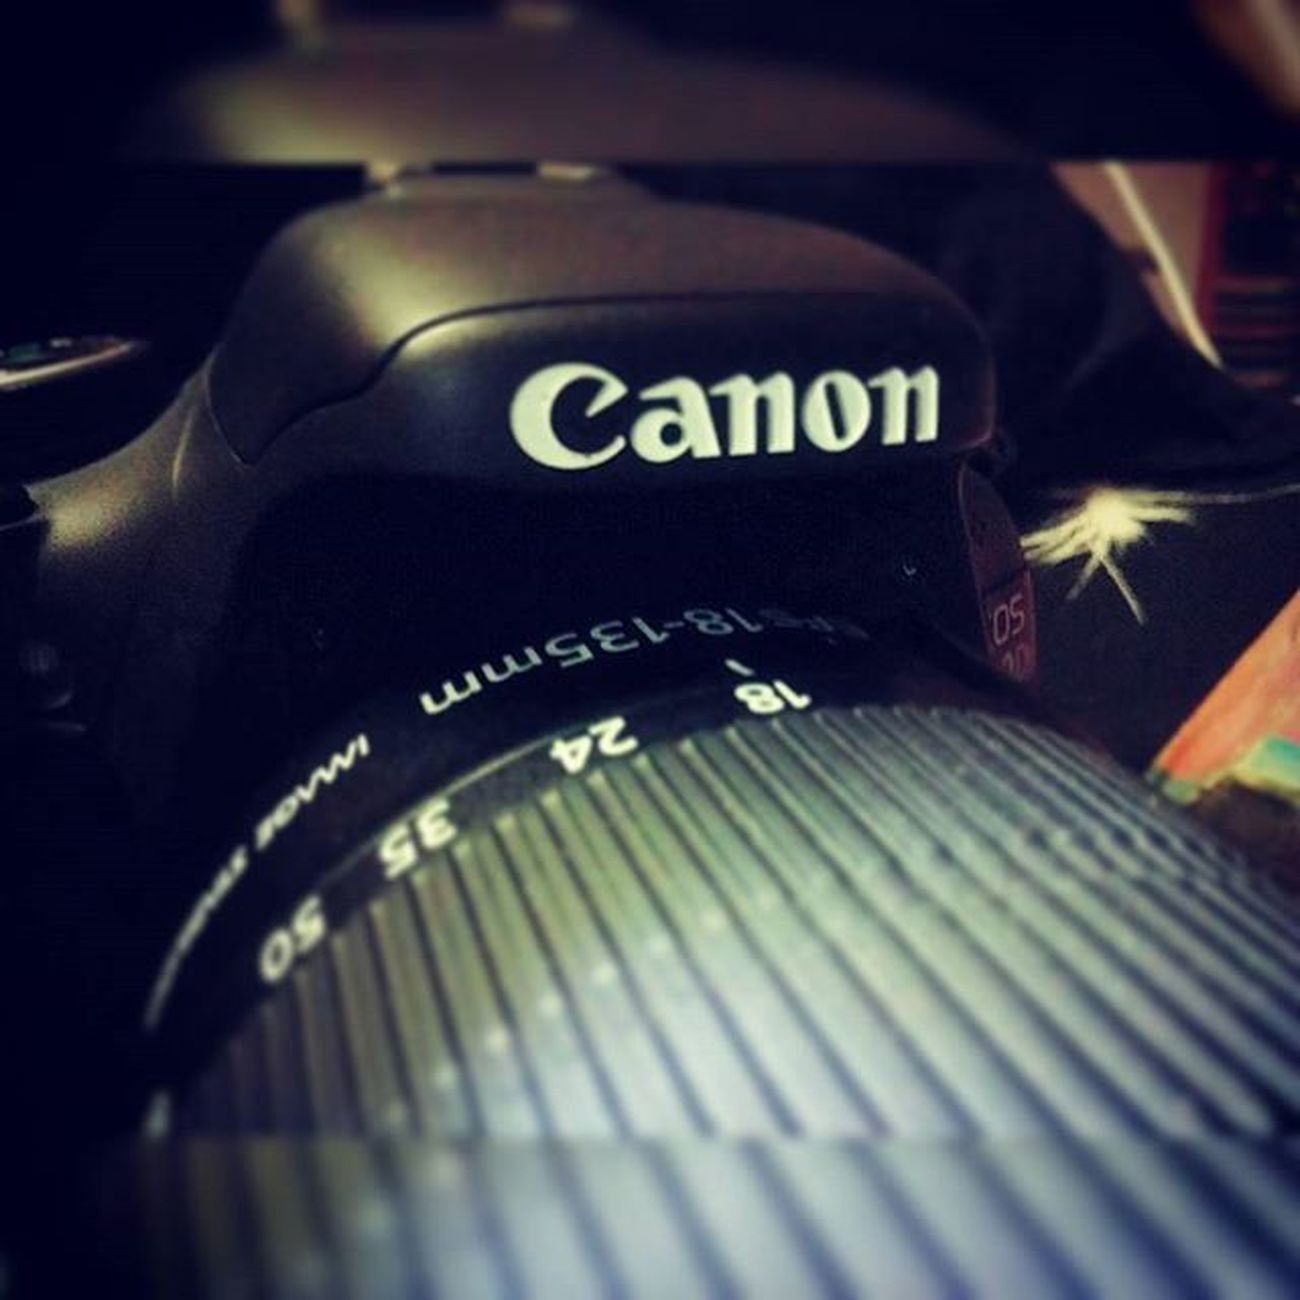 || Happiness is a new lens ;) 8| || Canon 18_135 STM